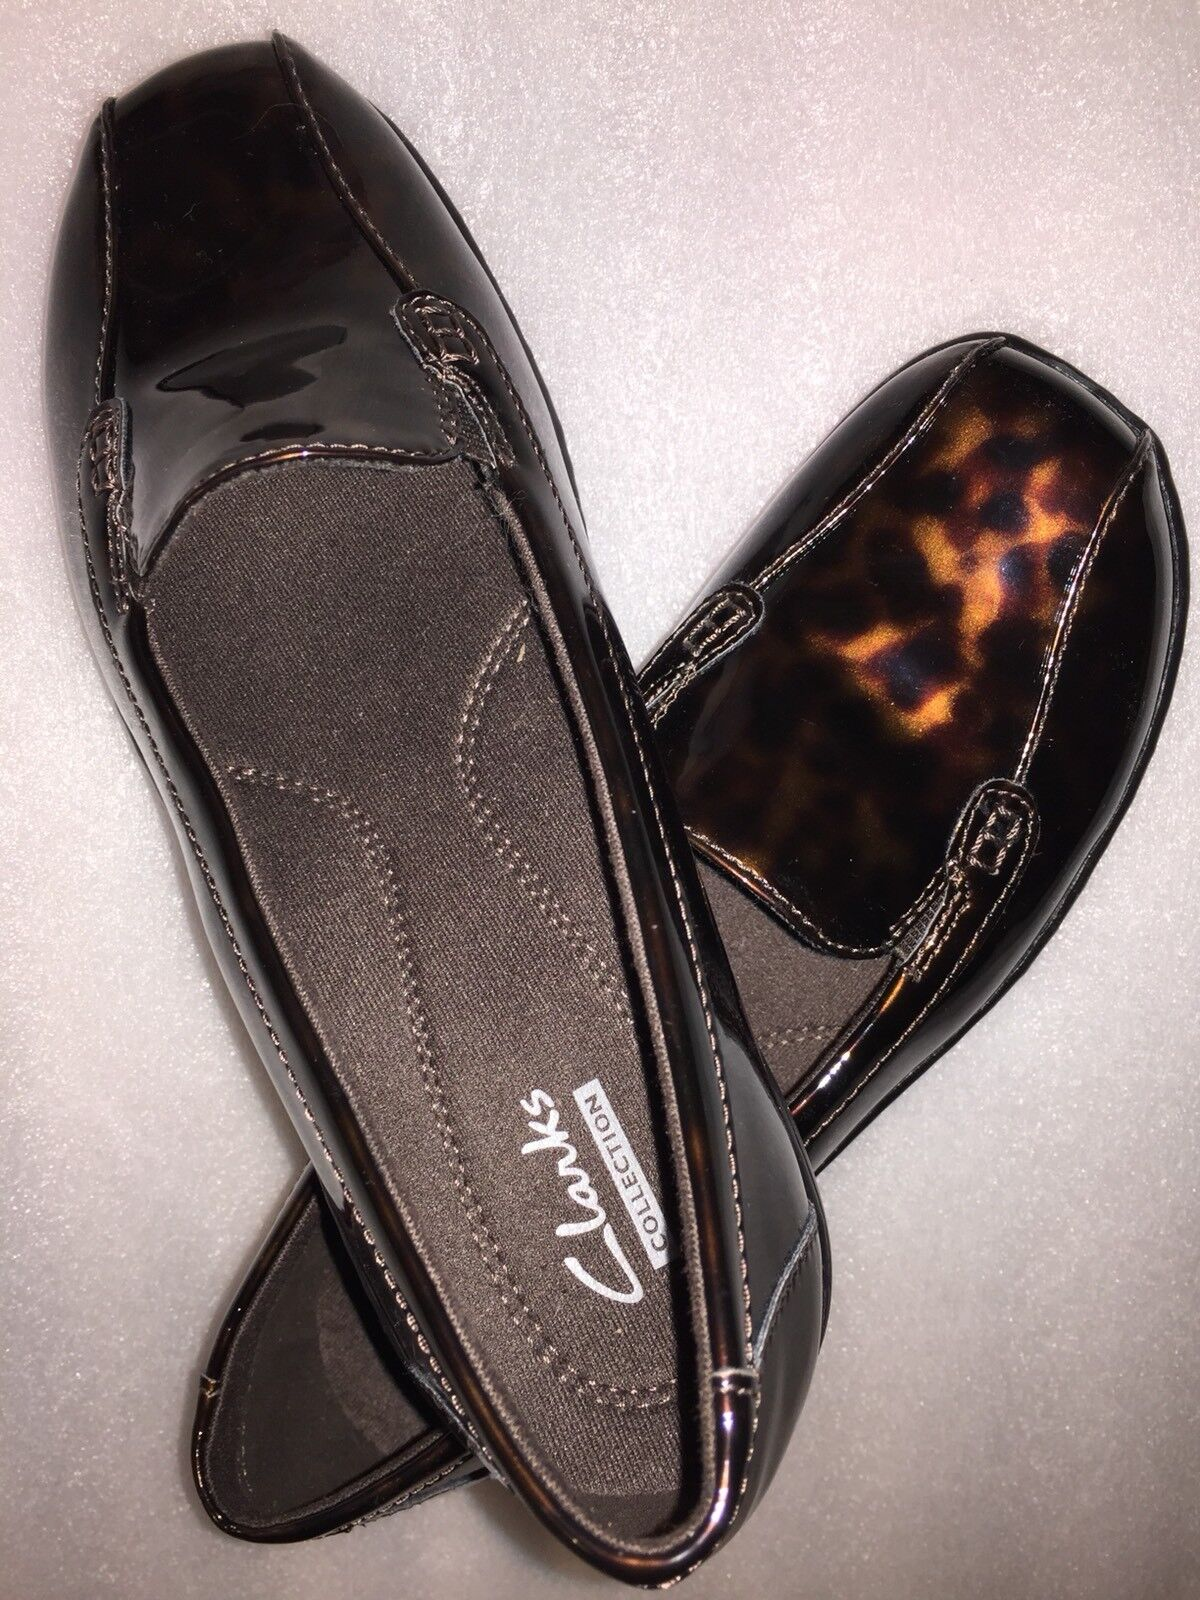 Clarks Bendables - Bayou Q Leather Croco Embossed Slip-on Slip-on Slip-on Loafers NEW Retail  80 4fd0df